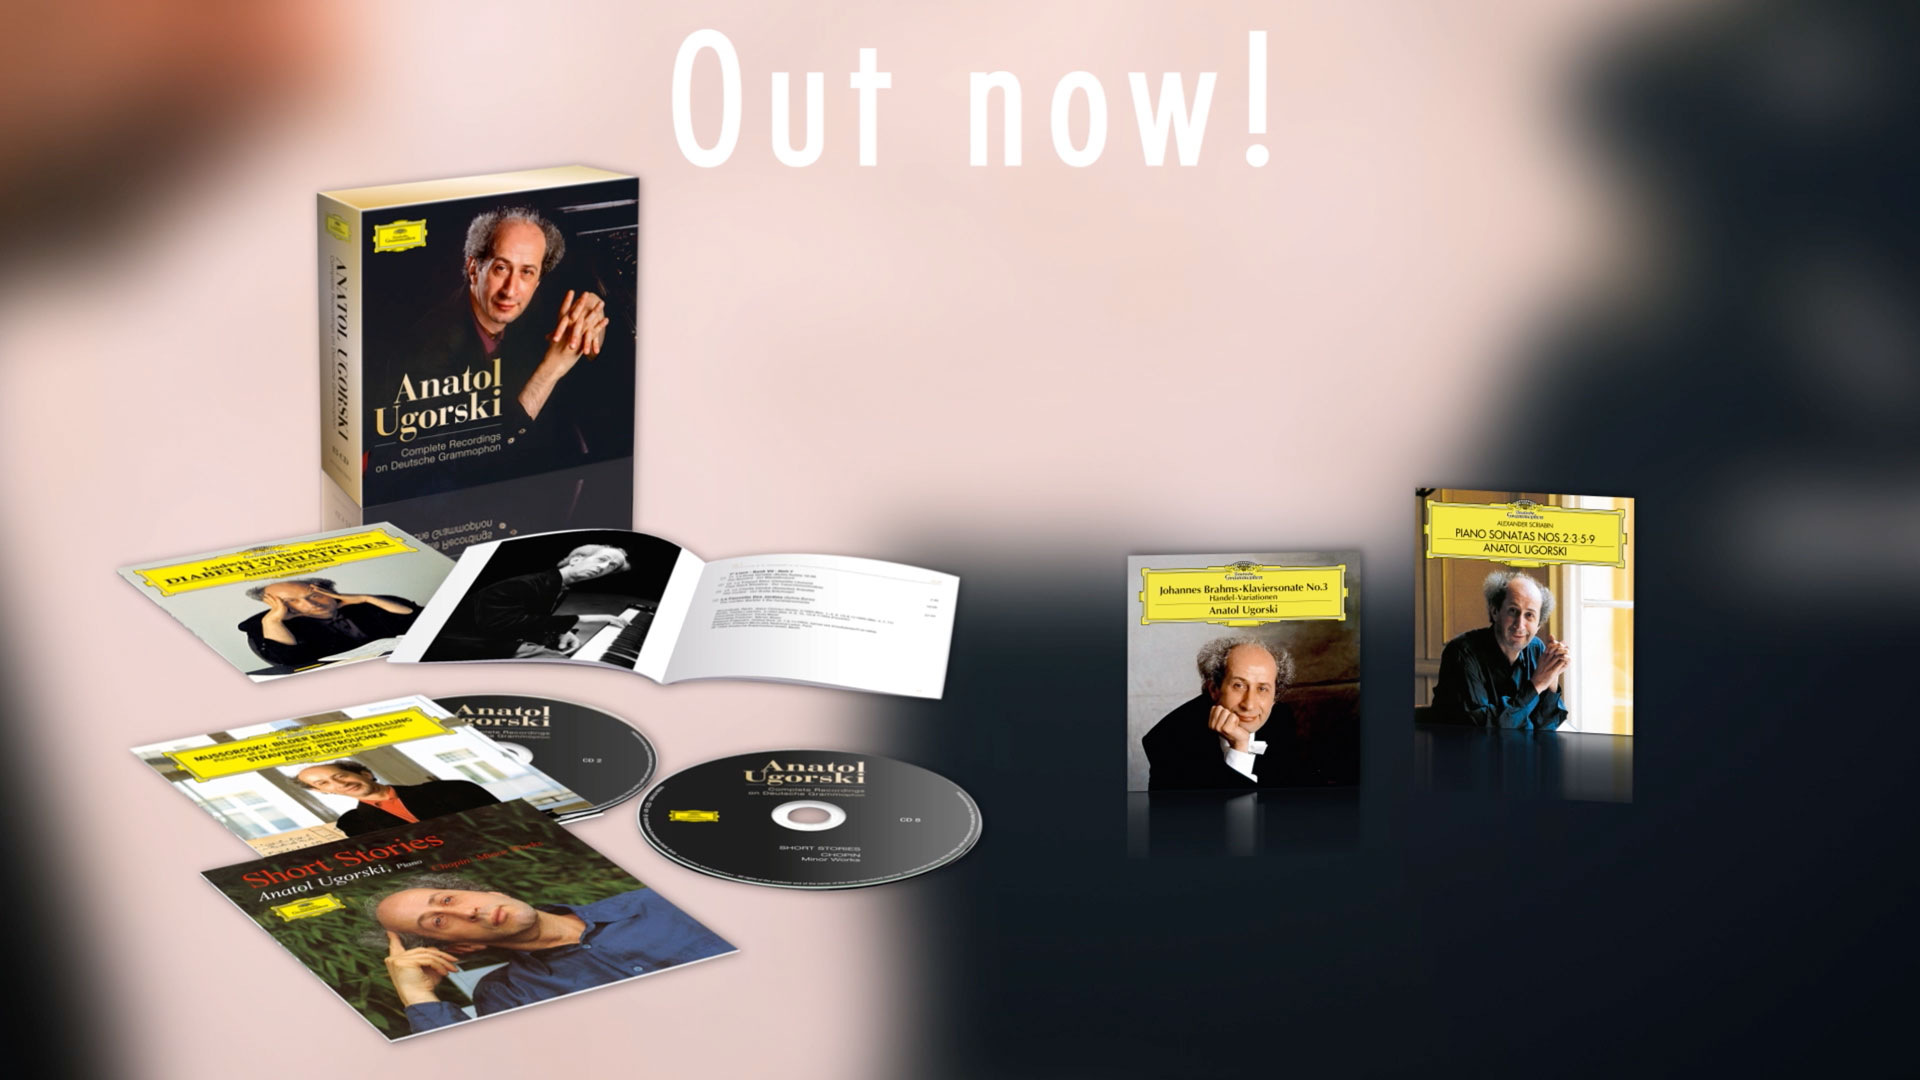 Deutsche Grammophon published a special editoin of the russian piansist Anatol Ugorski. The Founders produced a product film with animation for the release.